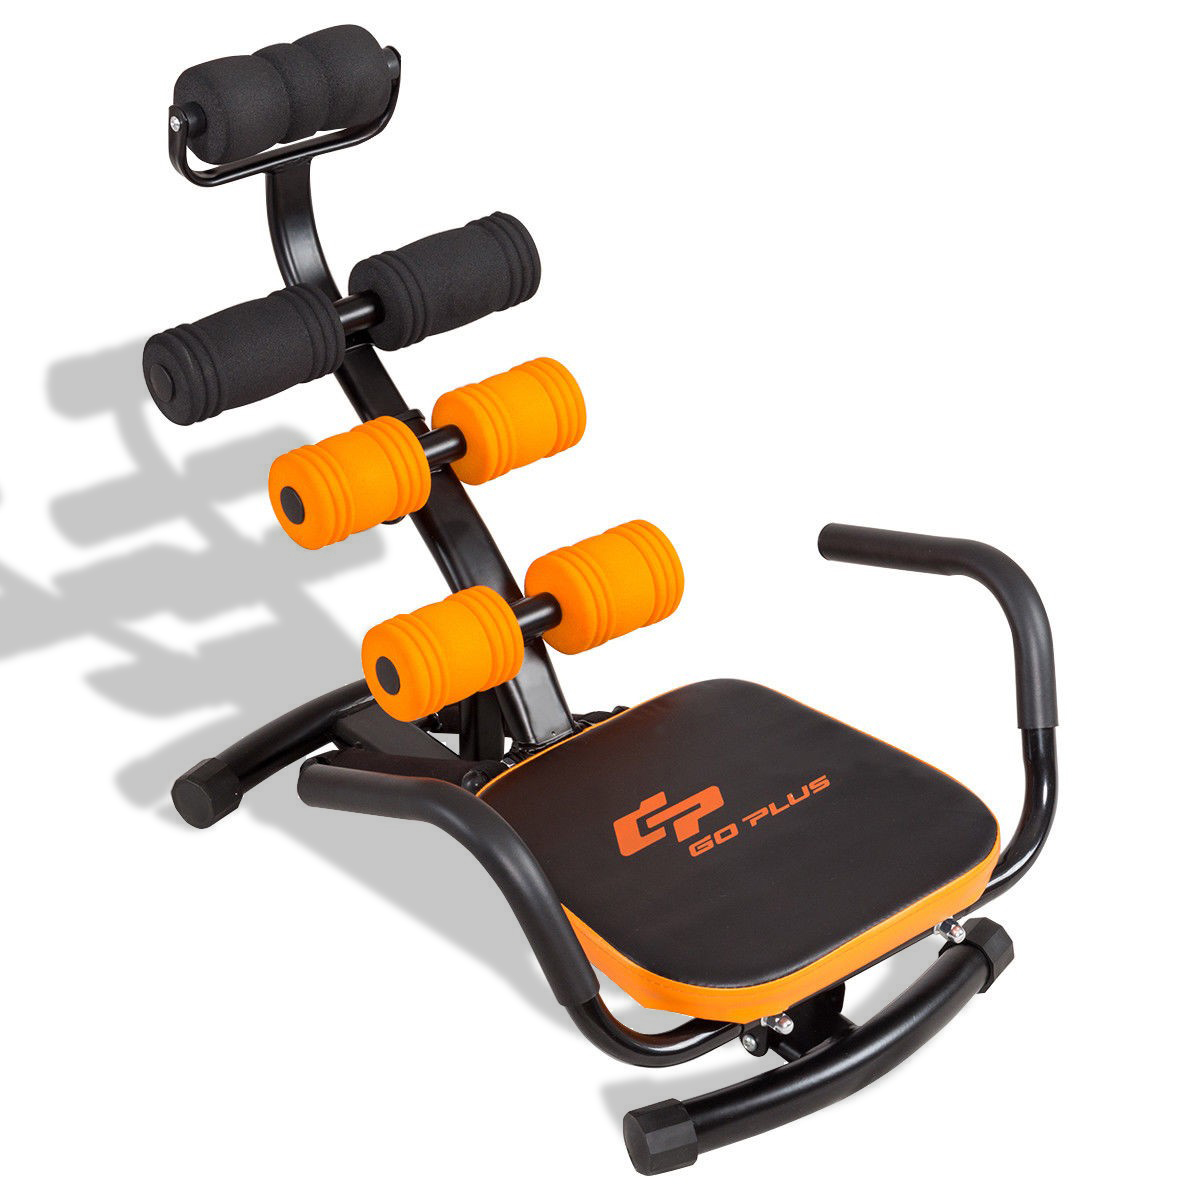 Details about  /Ab Abdominal Cruncher Trainer Exercise Machine Fitness Body Waist Shaper Gym